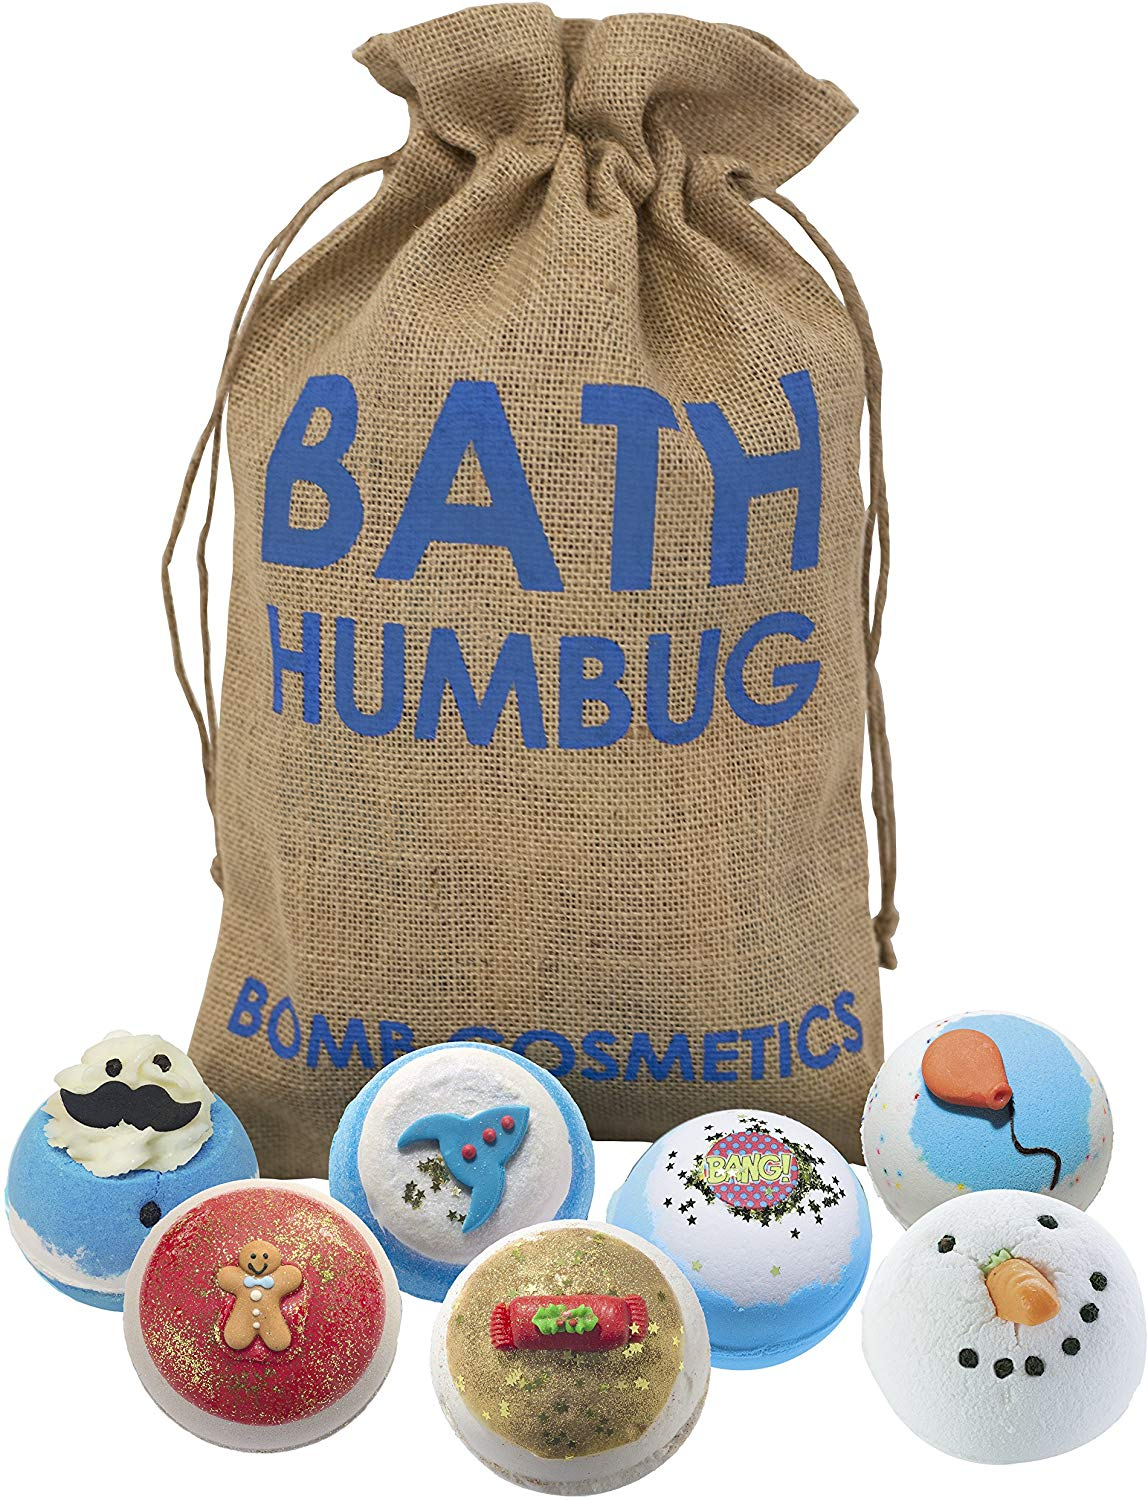 Bomb Cosmetics Bath Humbug Handmade Hessian Sack Bath Bomb Gift Pack, 7-Pieces